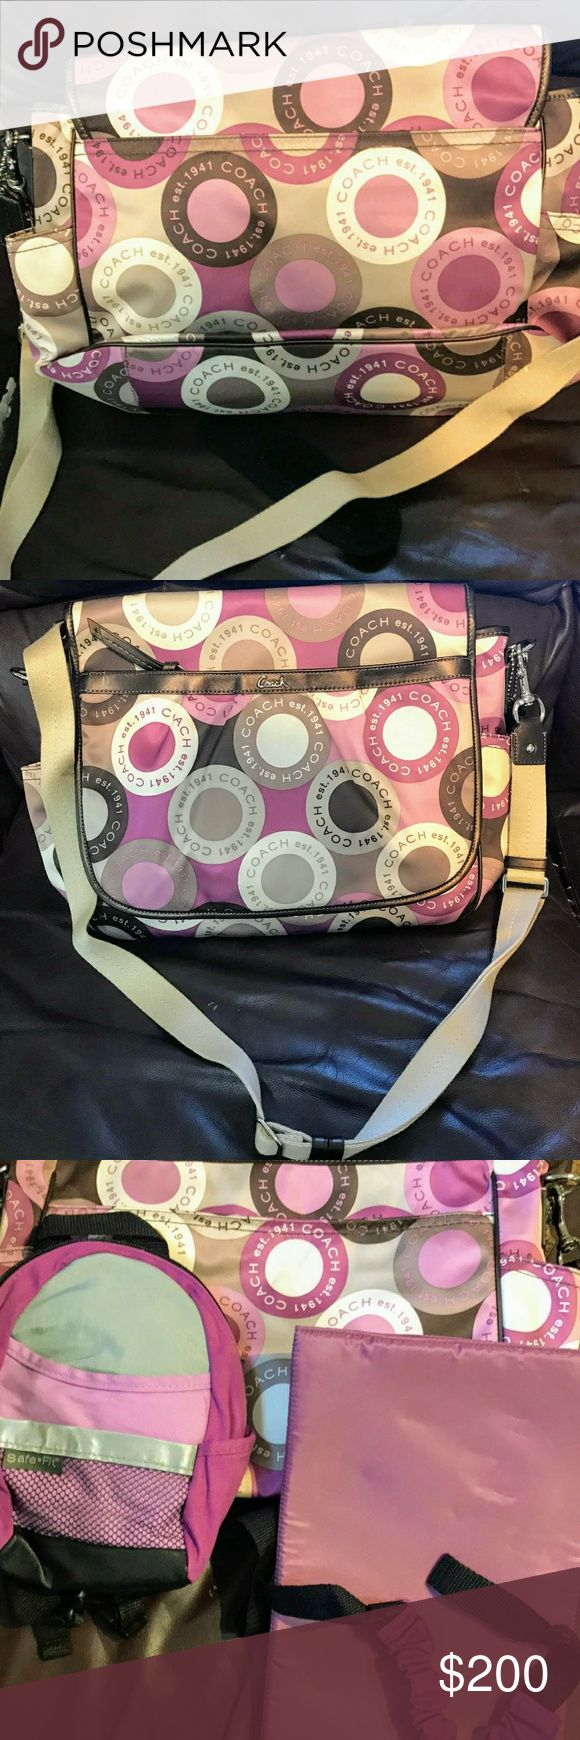 Coach Diaper Bag, Brand New Authentic Coach Brand New diaper bag for baby girl Never used! Still has tag (unattached) Includes changing pad and another small bag Punks, purples, tabs & browns Coach Accessories Bags